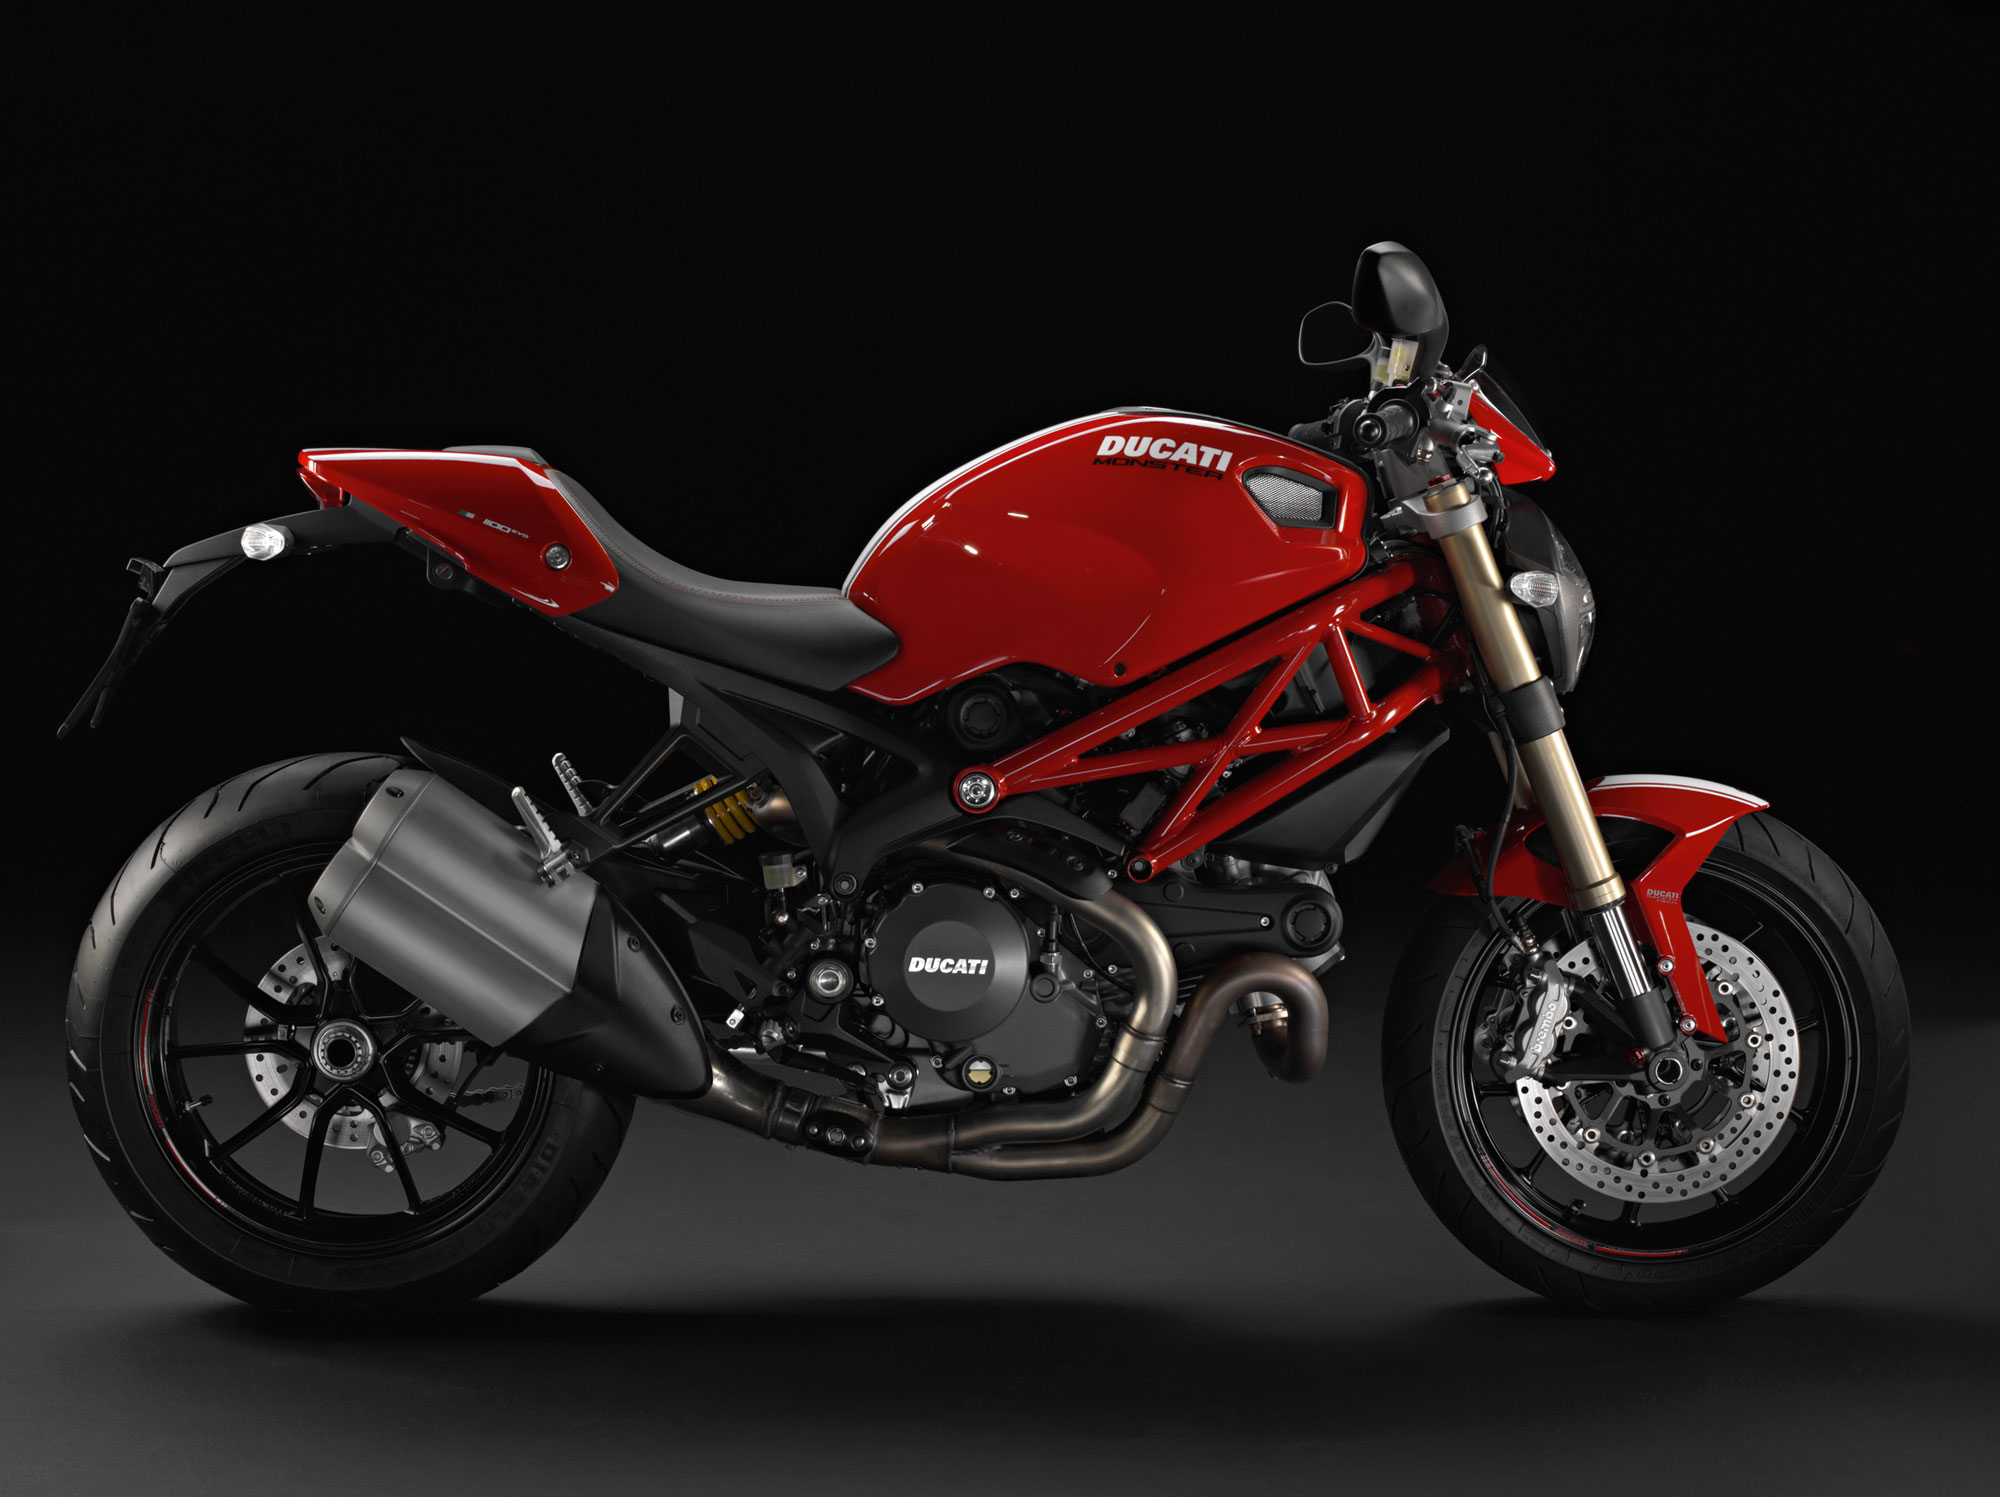 2012 Ducati Monster 1100 EVO Review